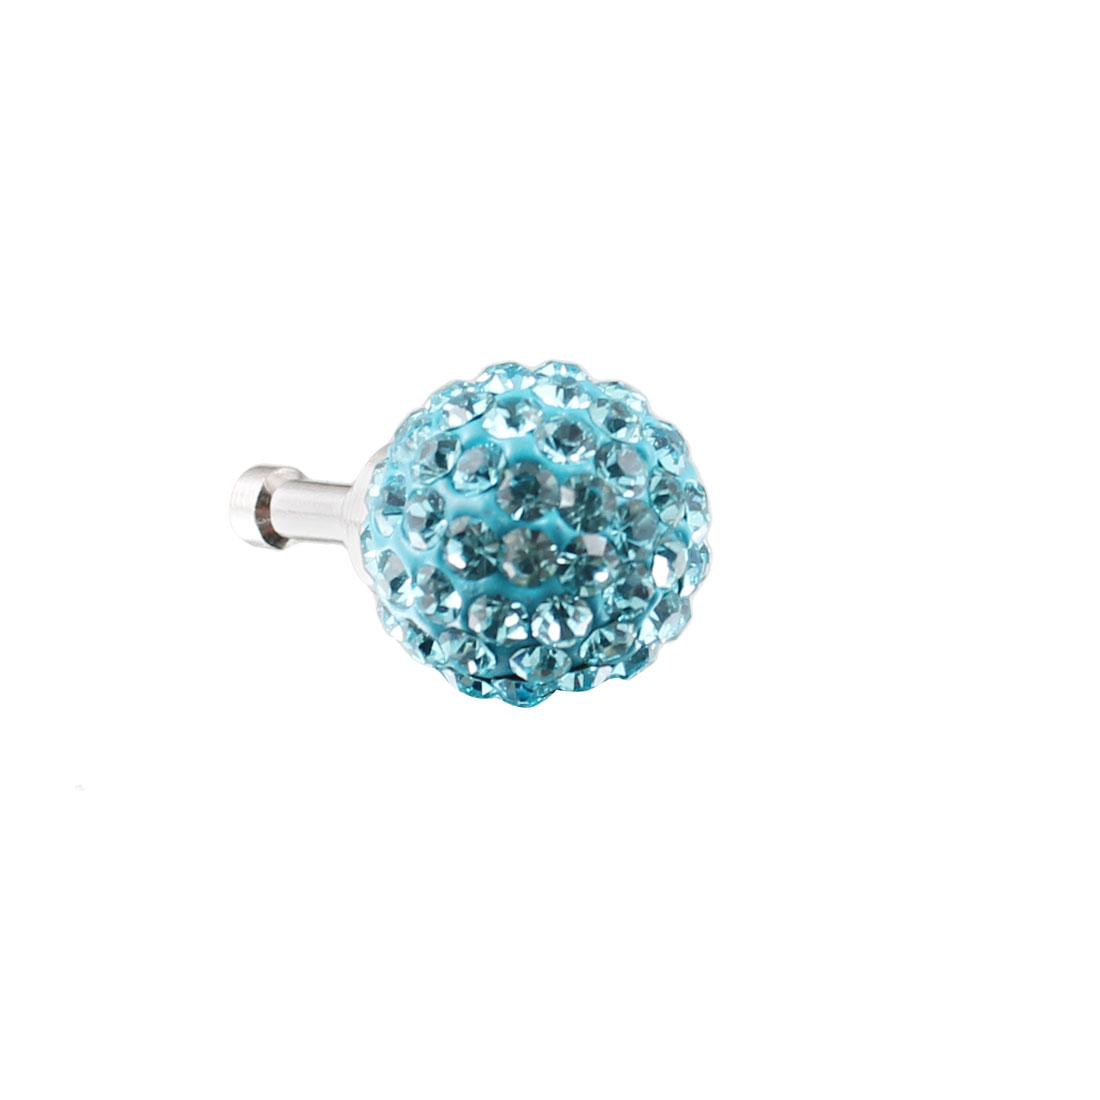 Bling Light Blue Crystal 3.5mm Anti Dust Ear Cap Plug Jack for Phone